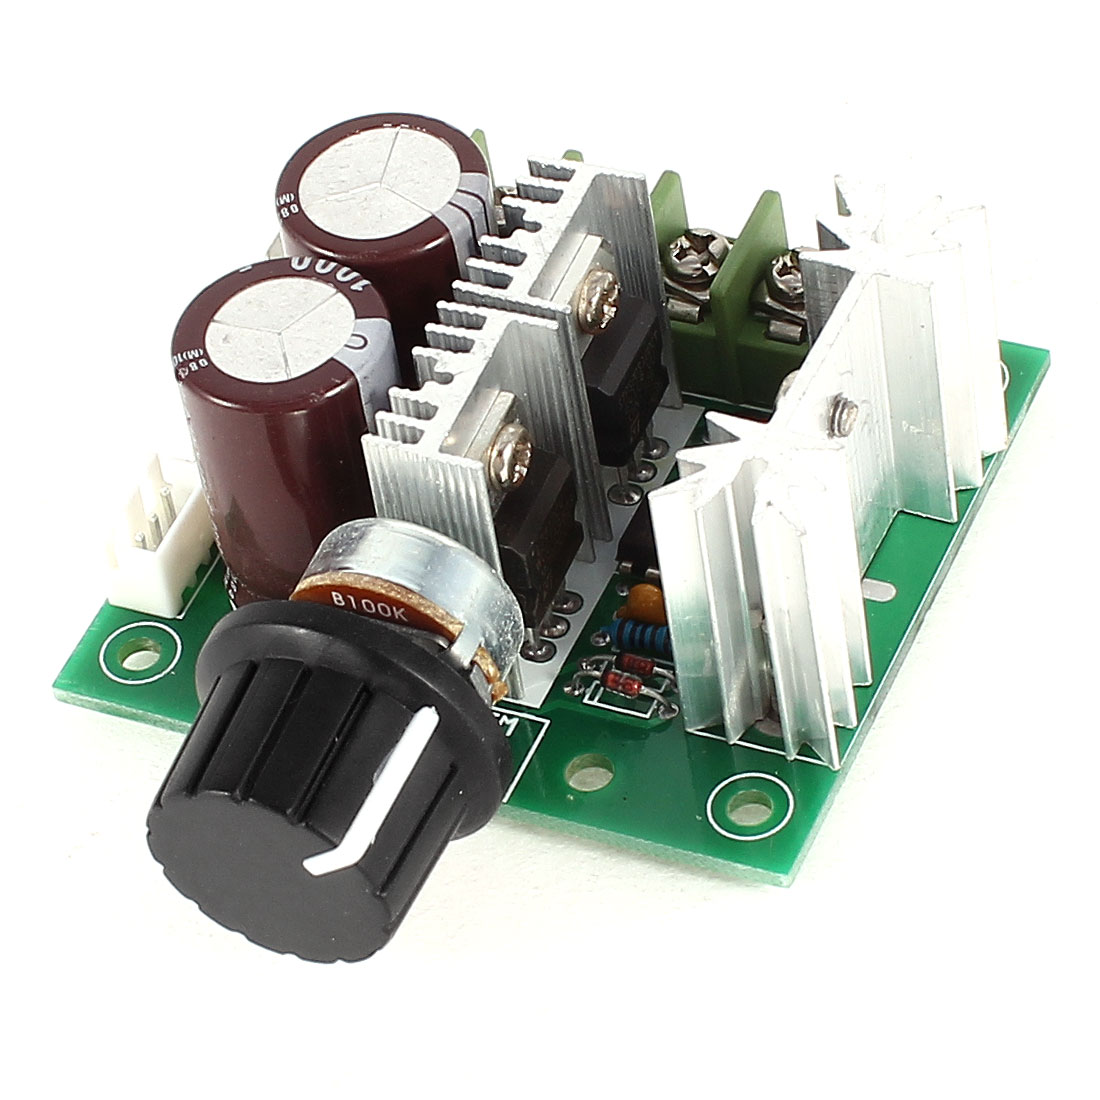 K20 DC 12-40V Reduction Motor Adjustable Speed PWM Controller PCB Control Board